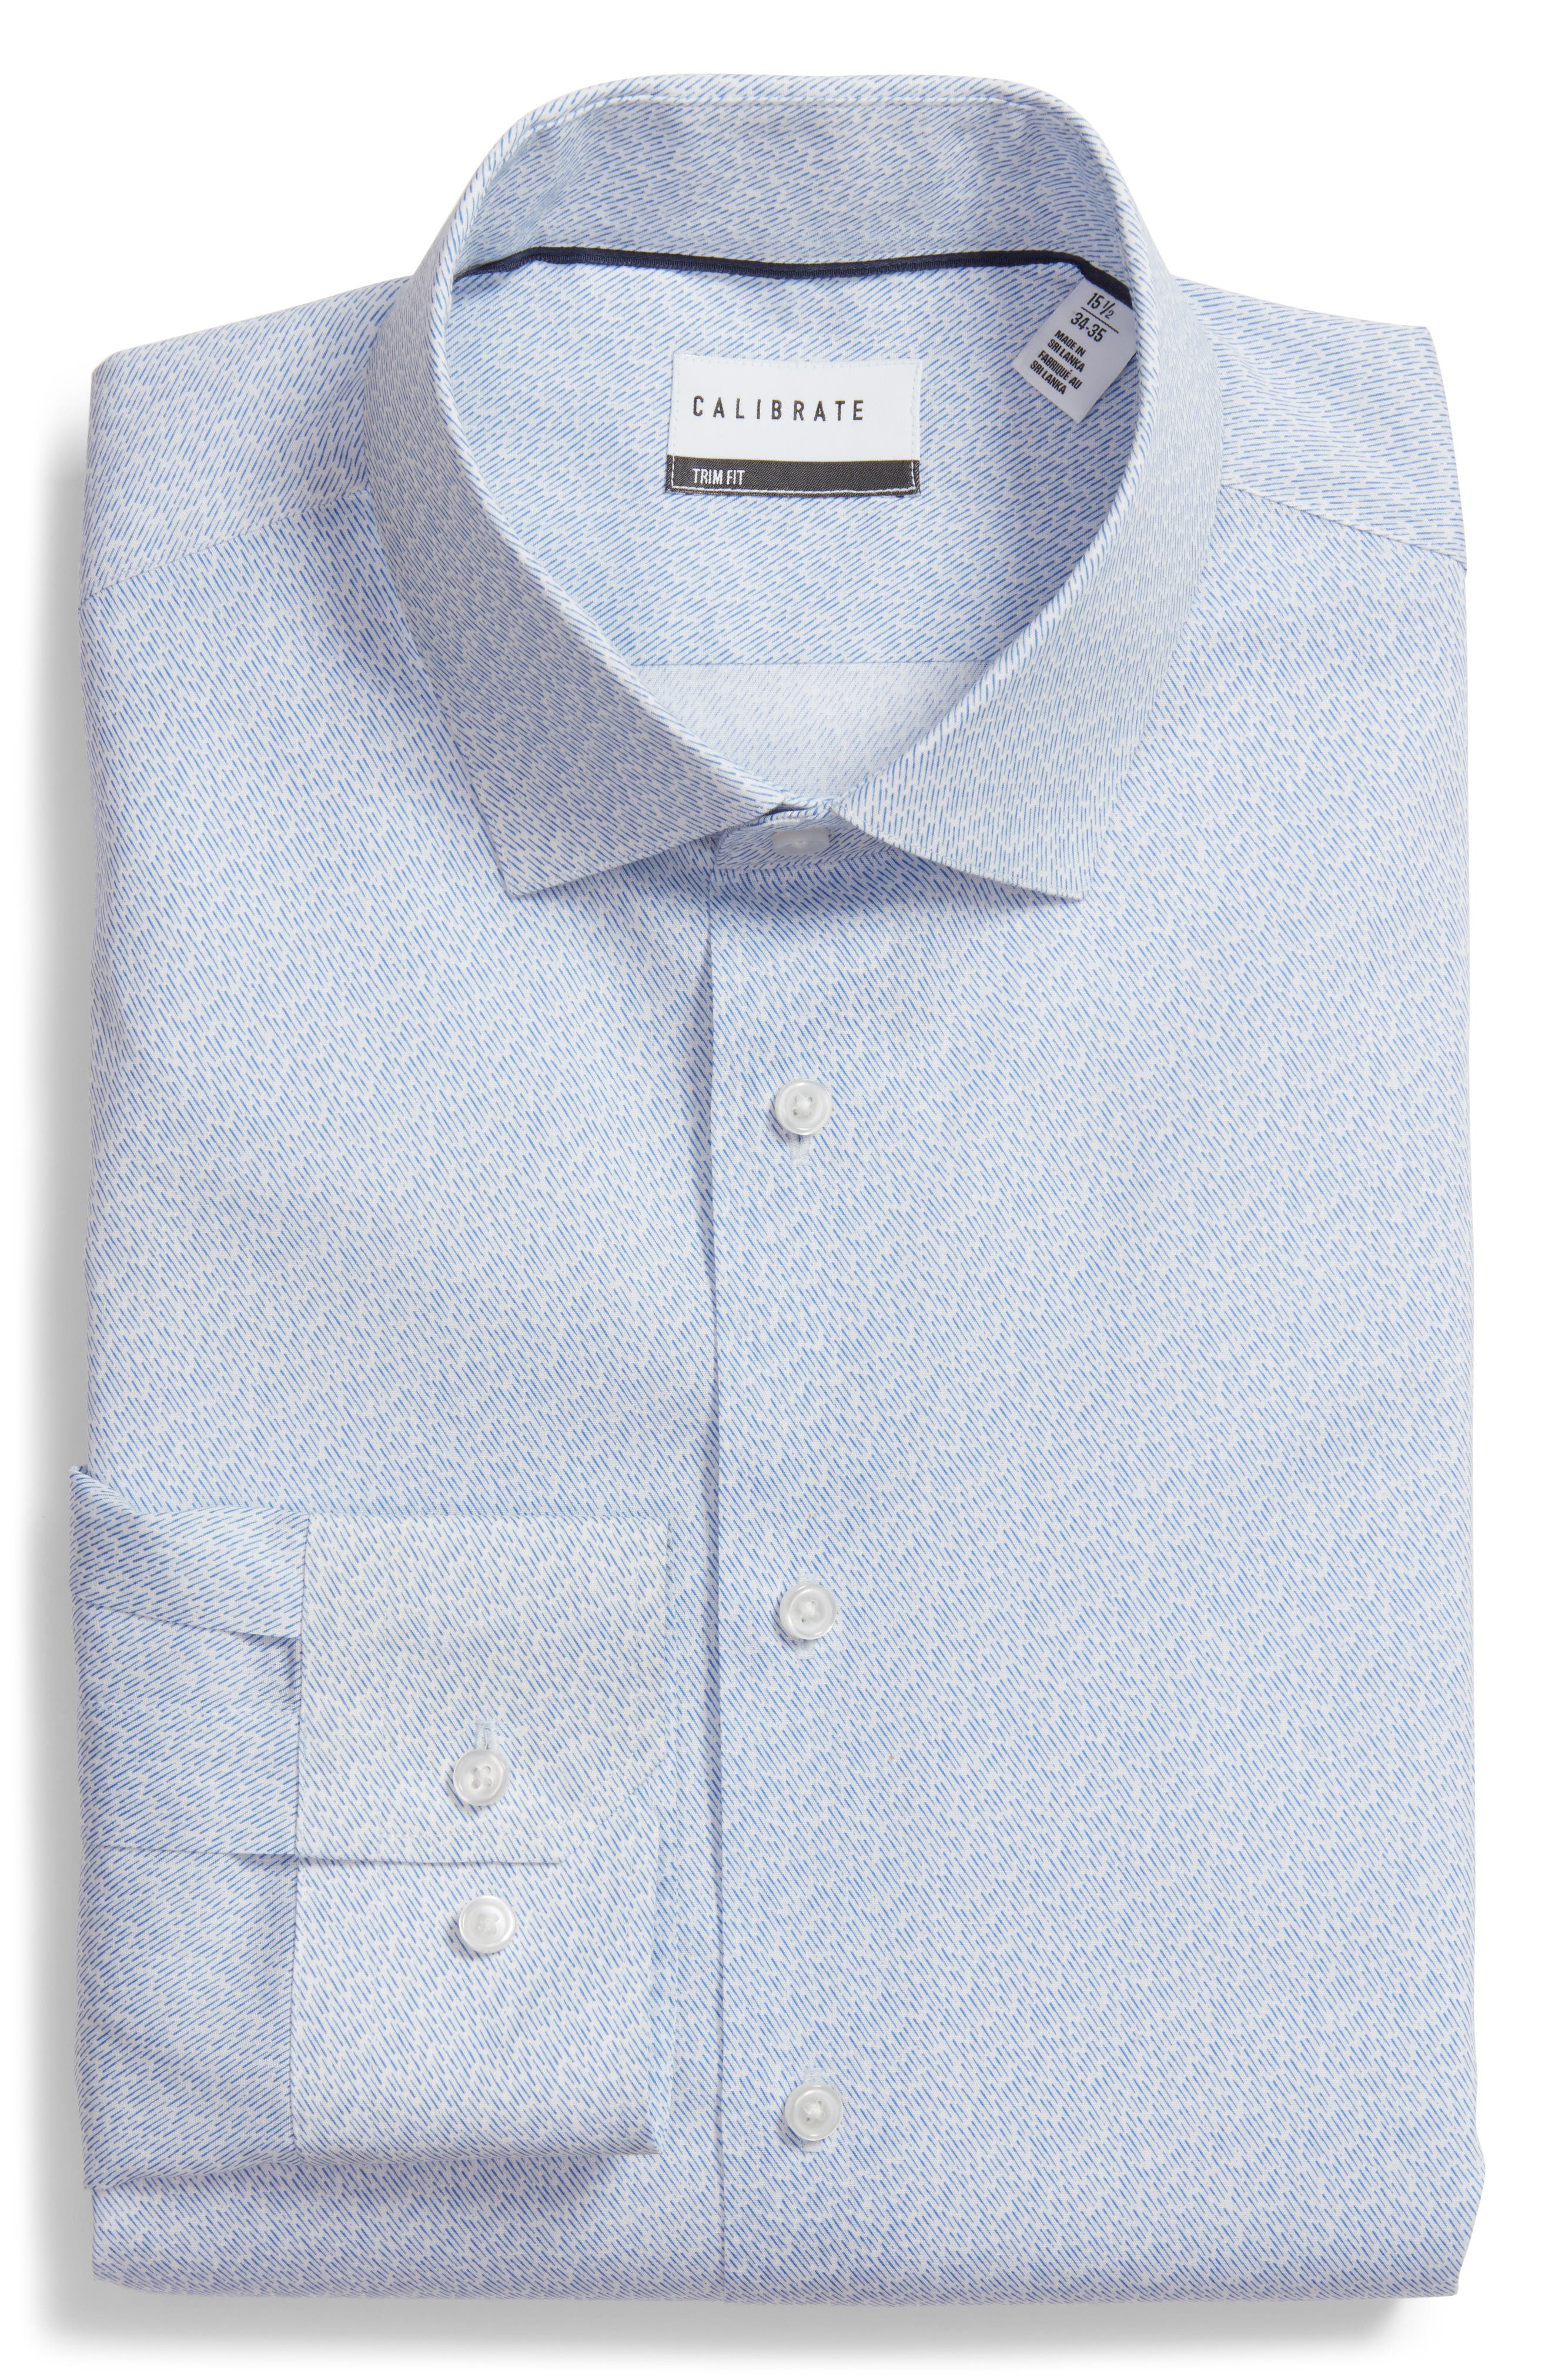 Trim Fit Print Dress Shirt,                             Main thumbnail 1, color,                             Blue Lake